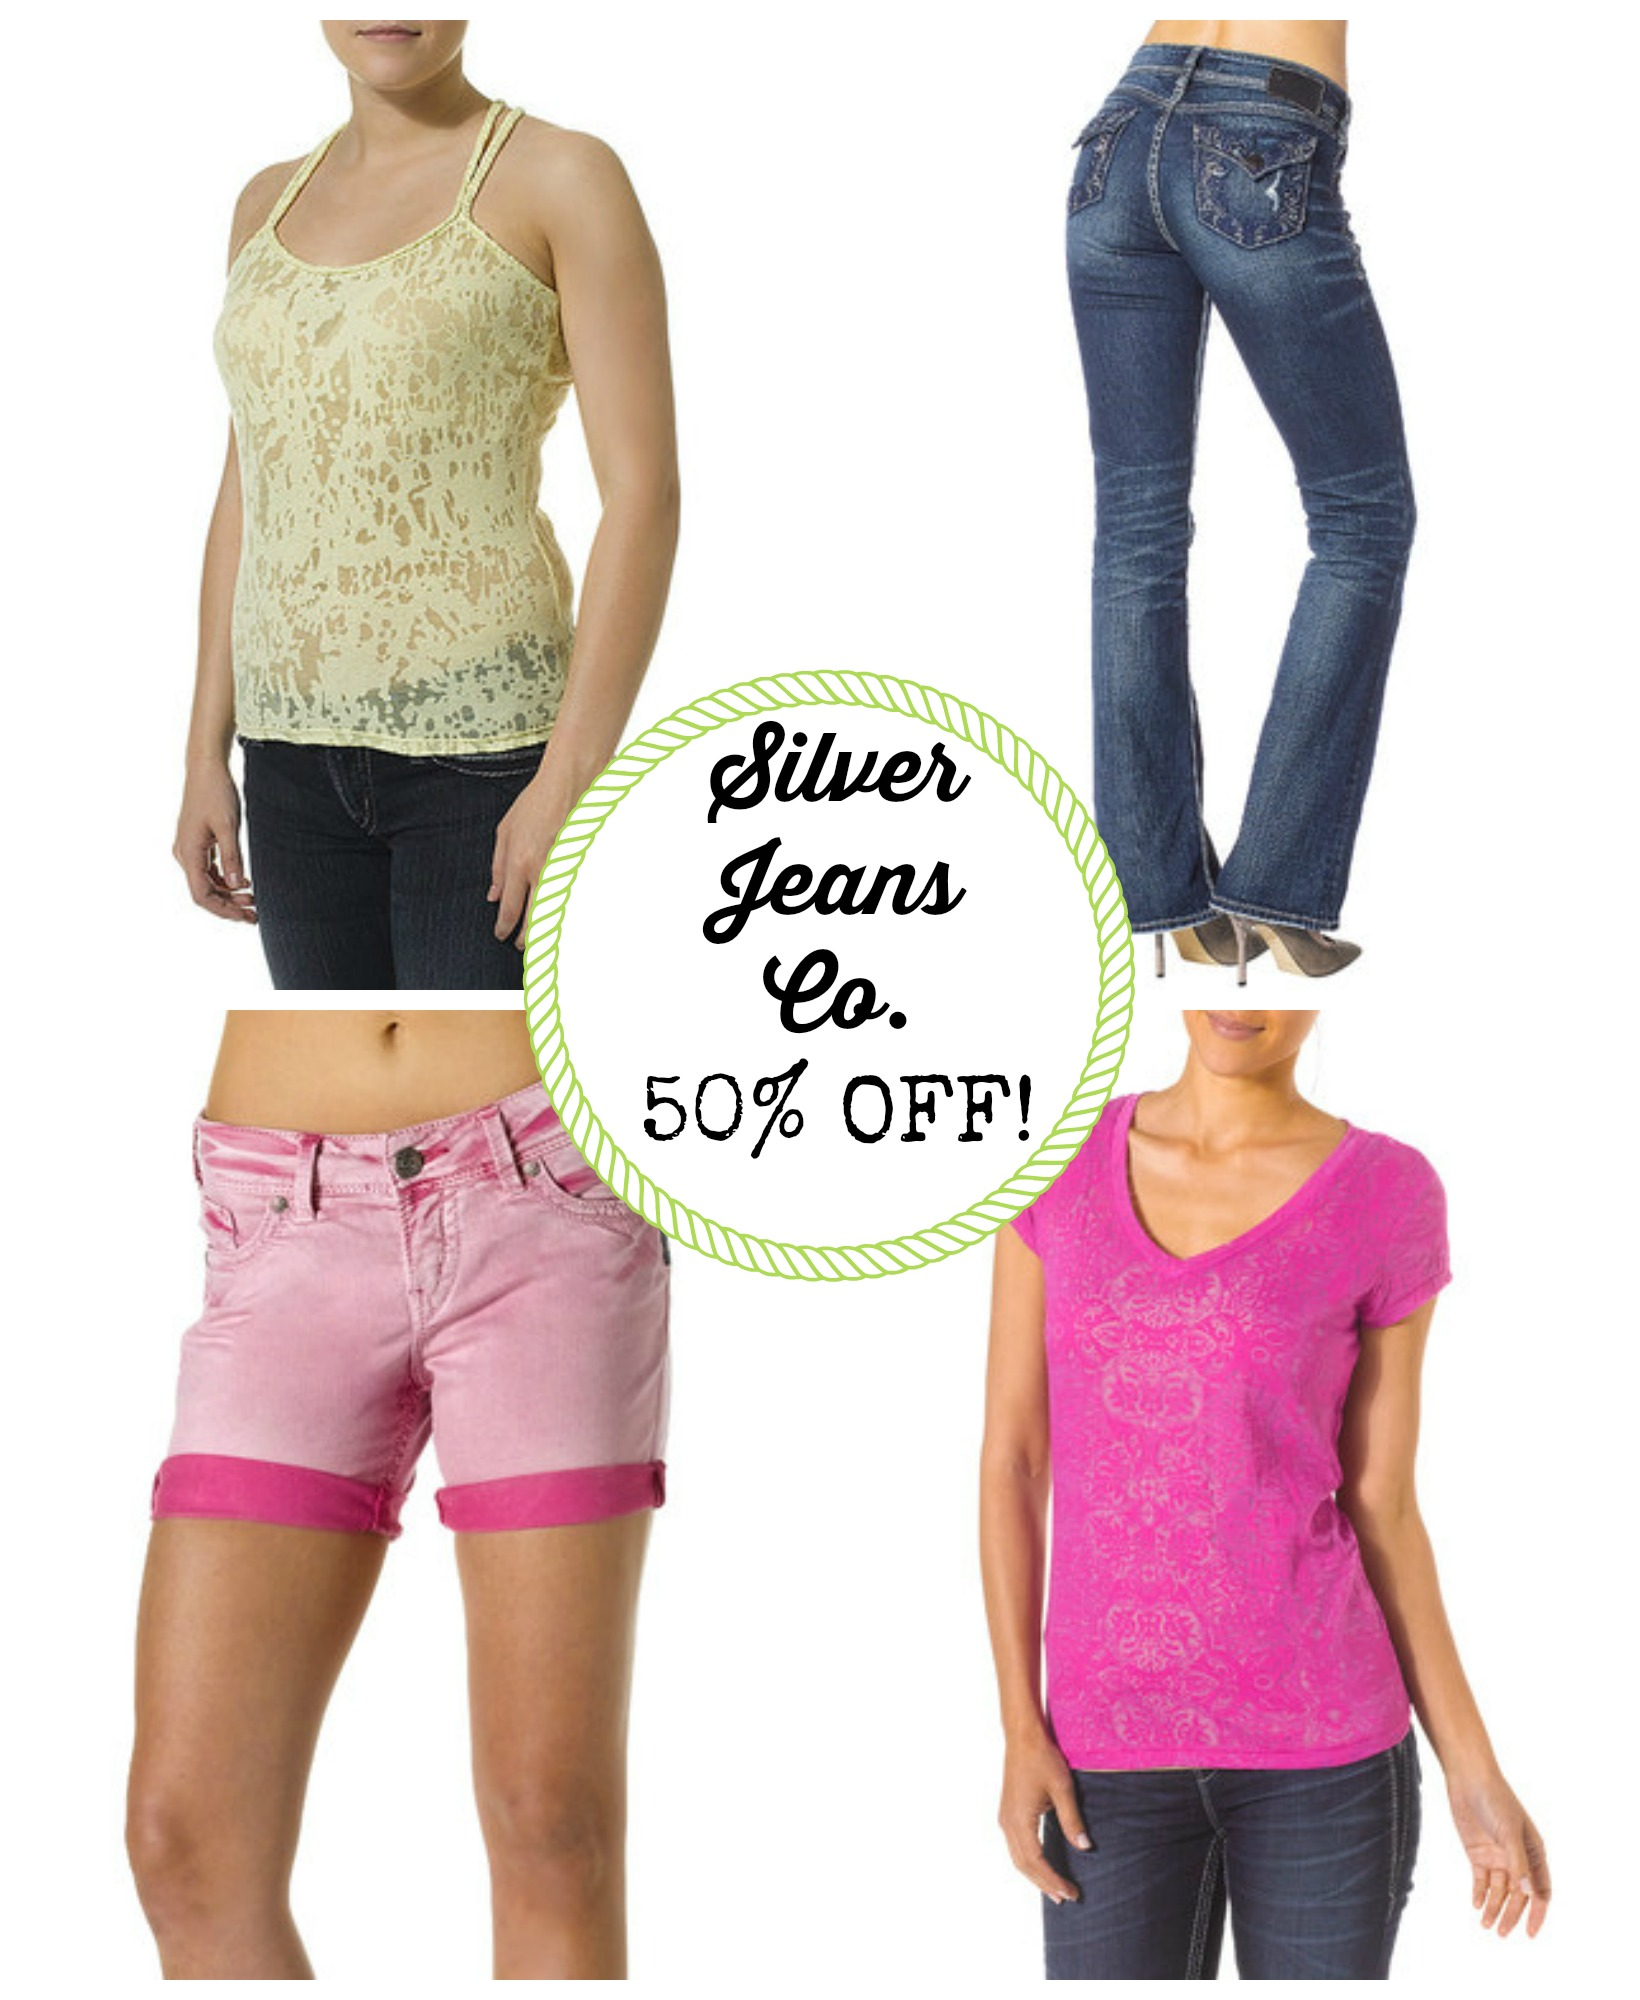 50% Off of Silver Jeans Co.: Jeans, Shirts, Shorts, and More ...